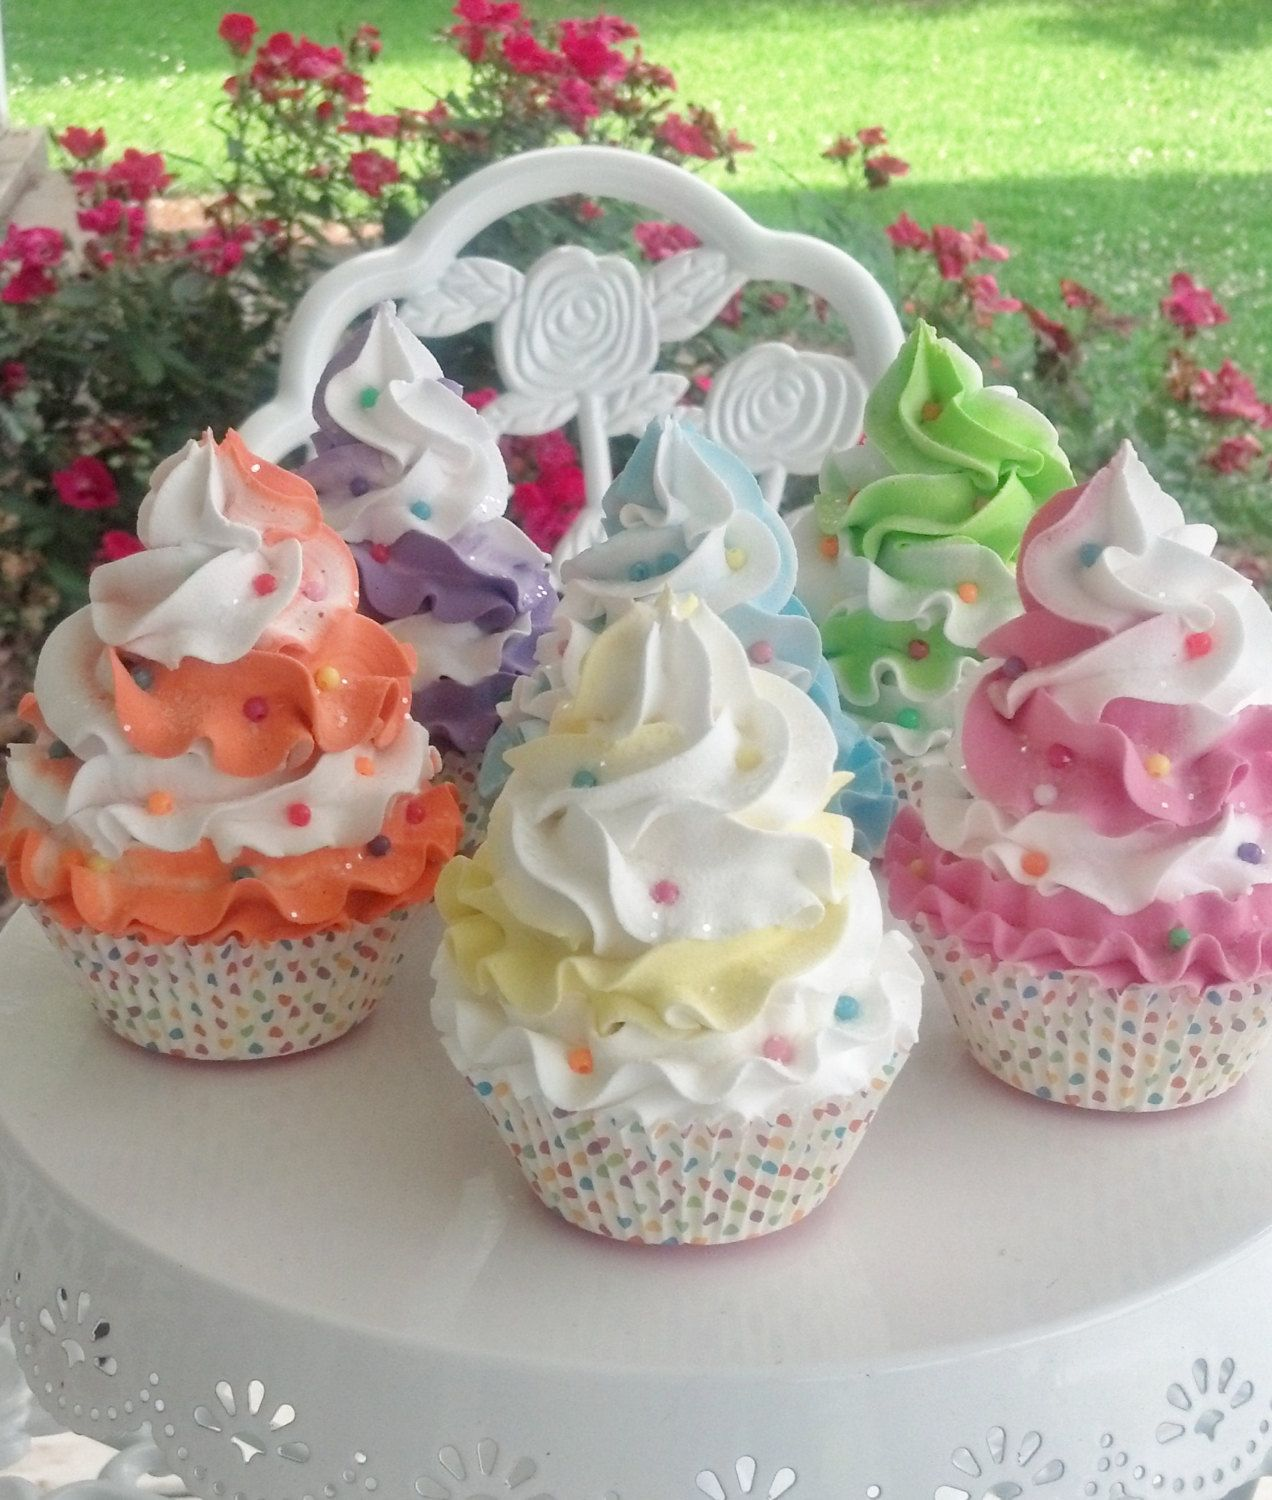 Fake Cupcakes With Candy Sprinkles Photo Props Shop Displays Party Decorations Home Decor Kitchen Centerpiece Cupcake Movie By